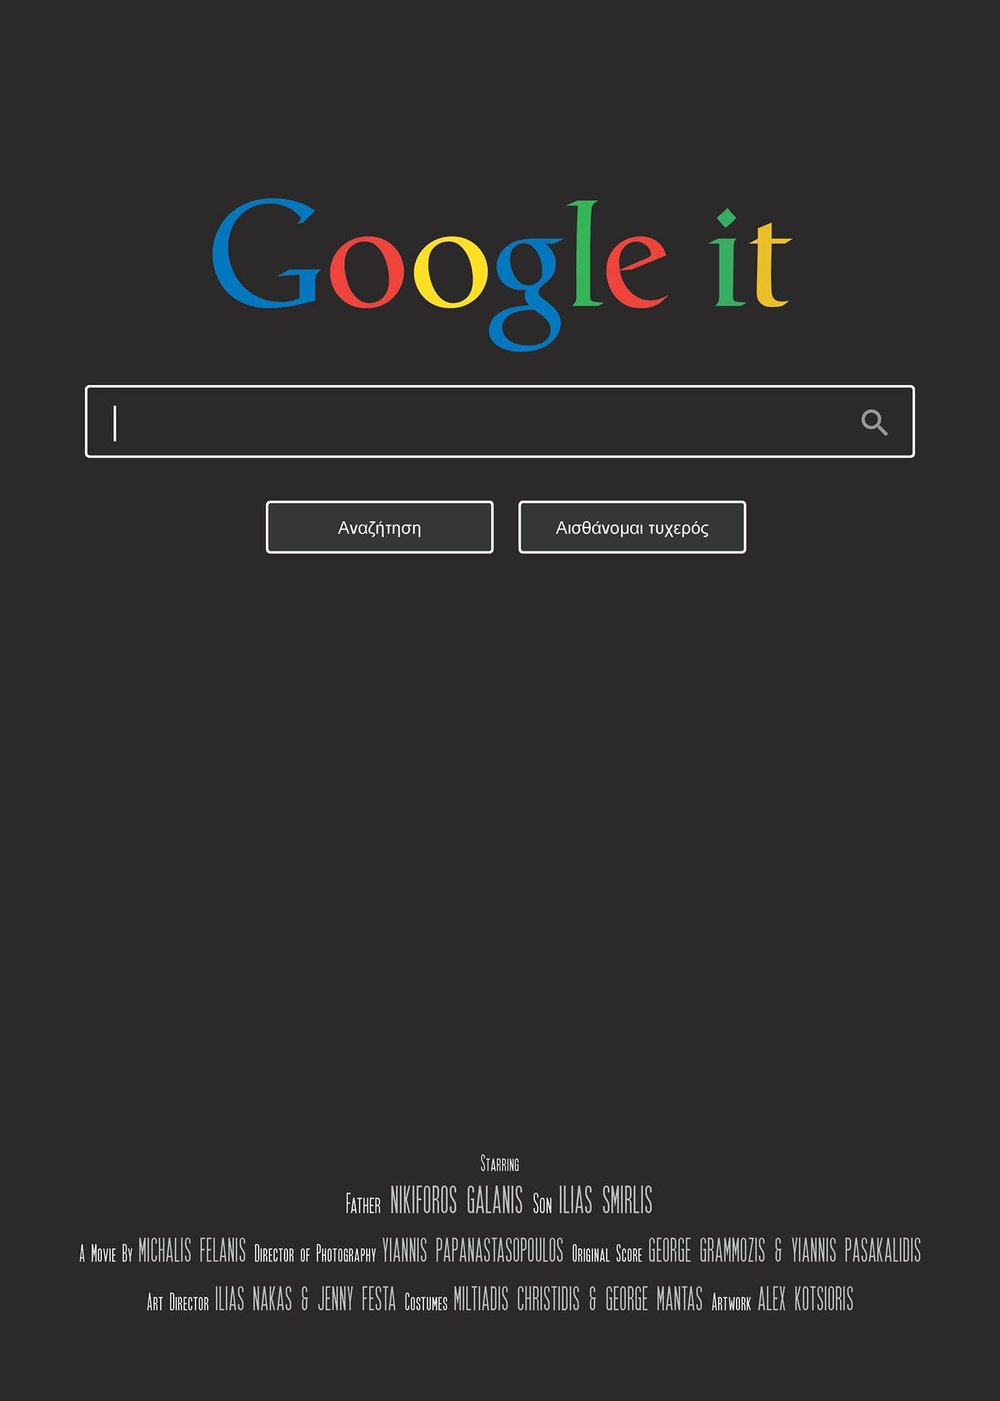 Google It   Director of Photography | 2015 | 2'  A look at how the Internet affects personal relationships in modern life.